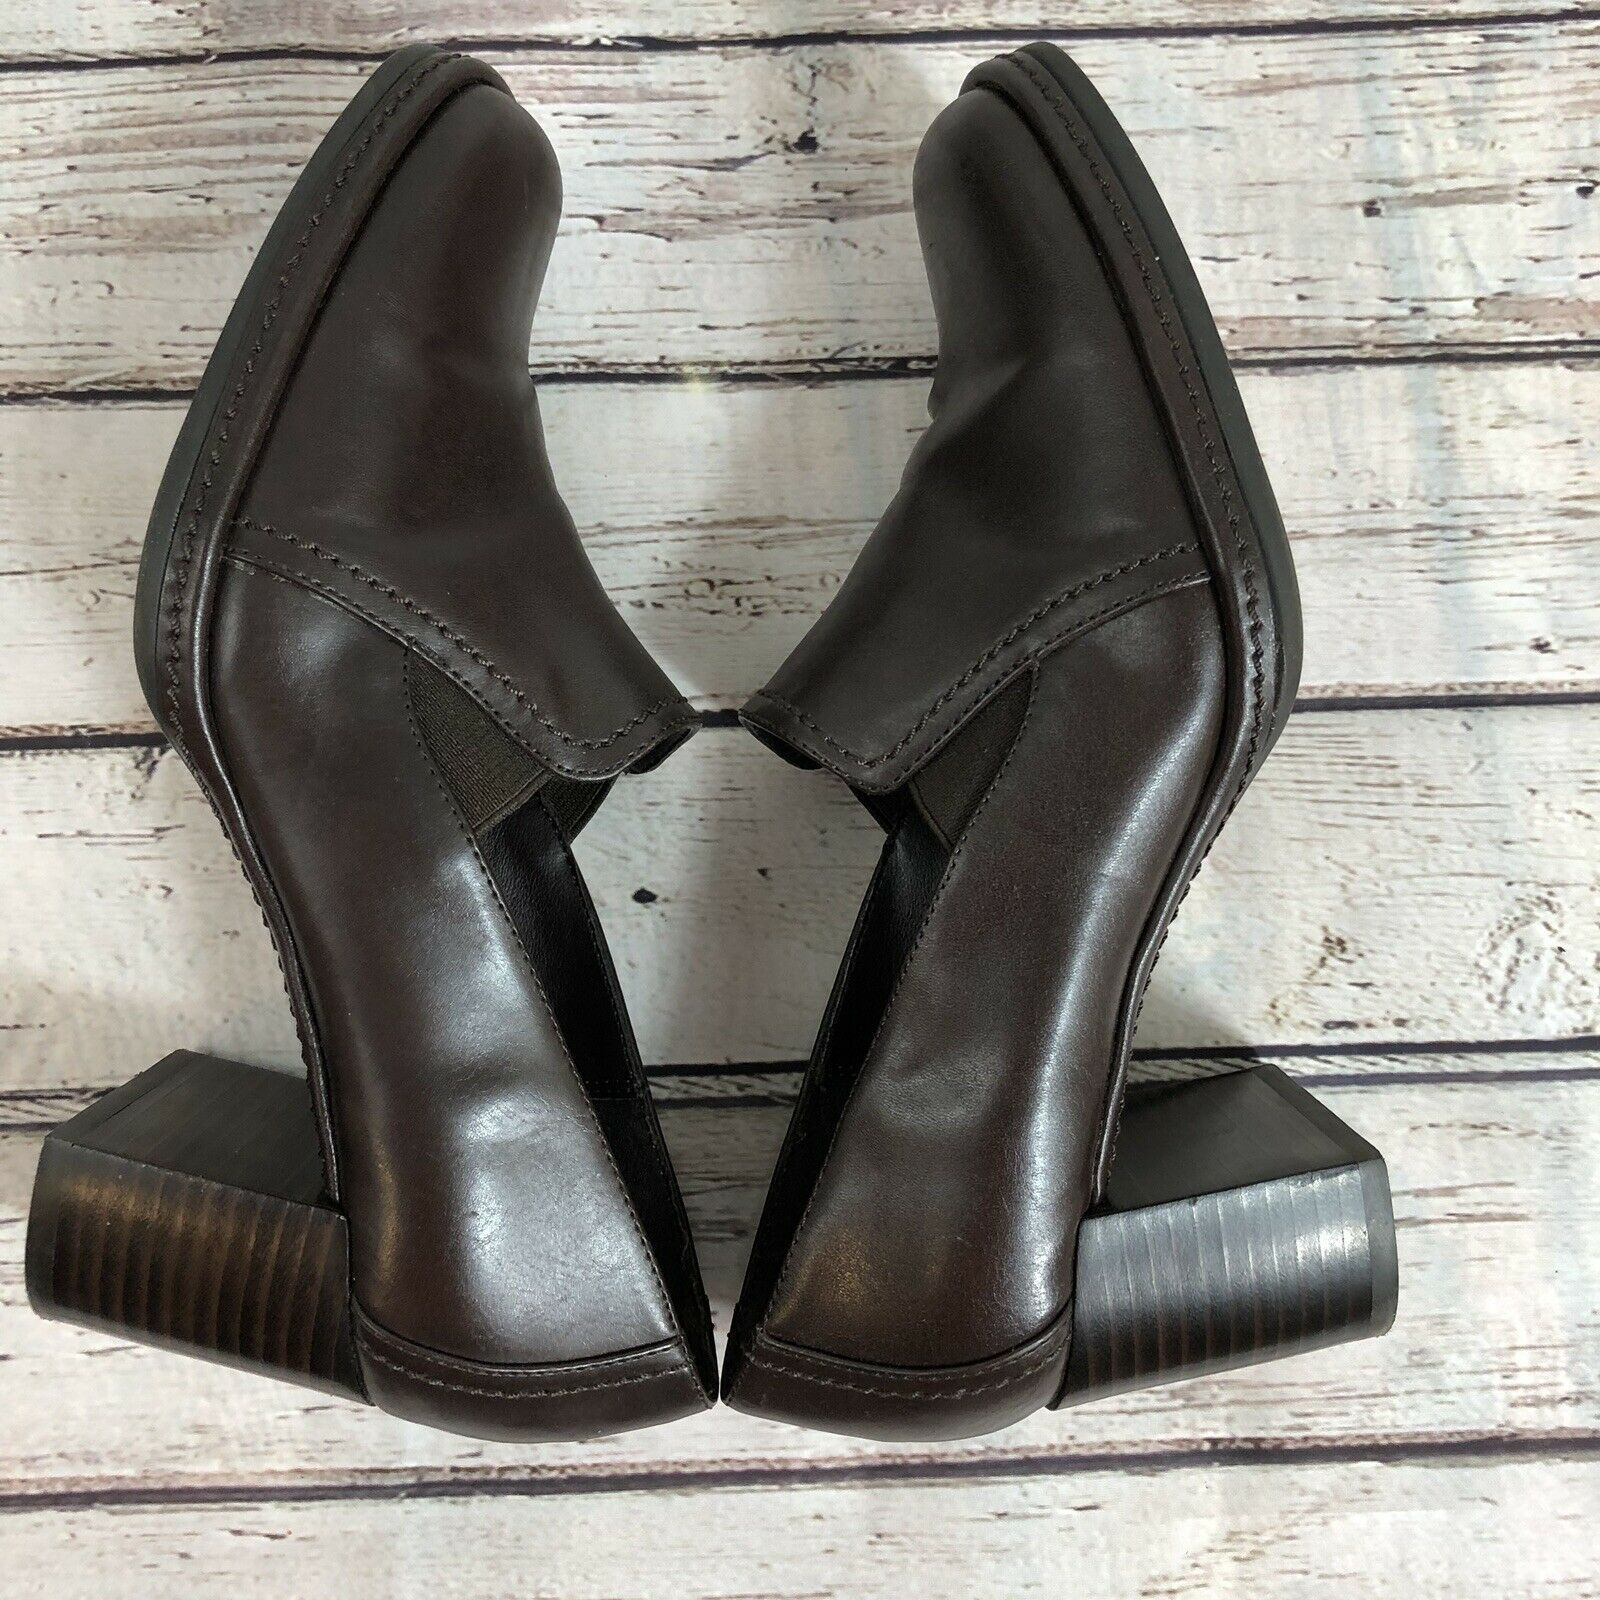 Nine West Brown Block Heel Loafer - Size 7